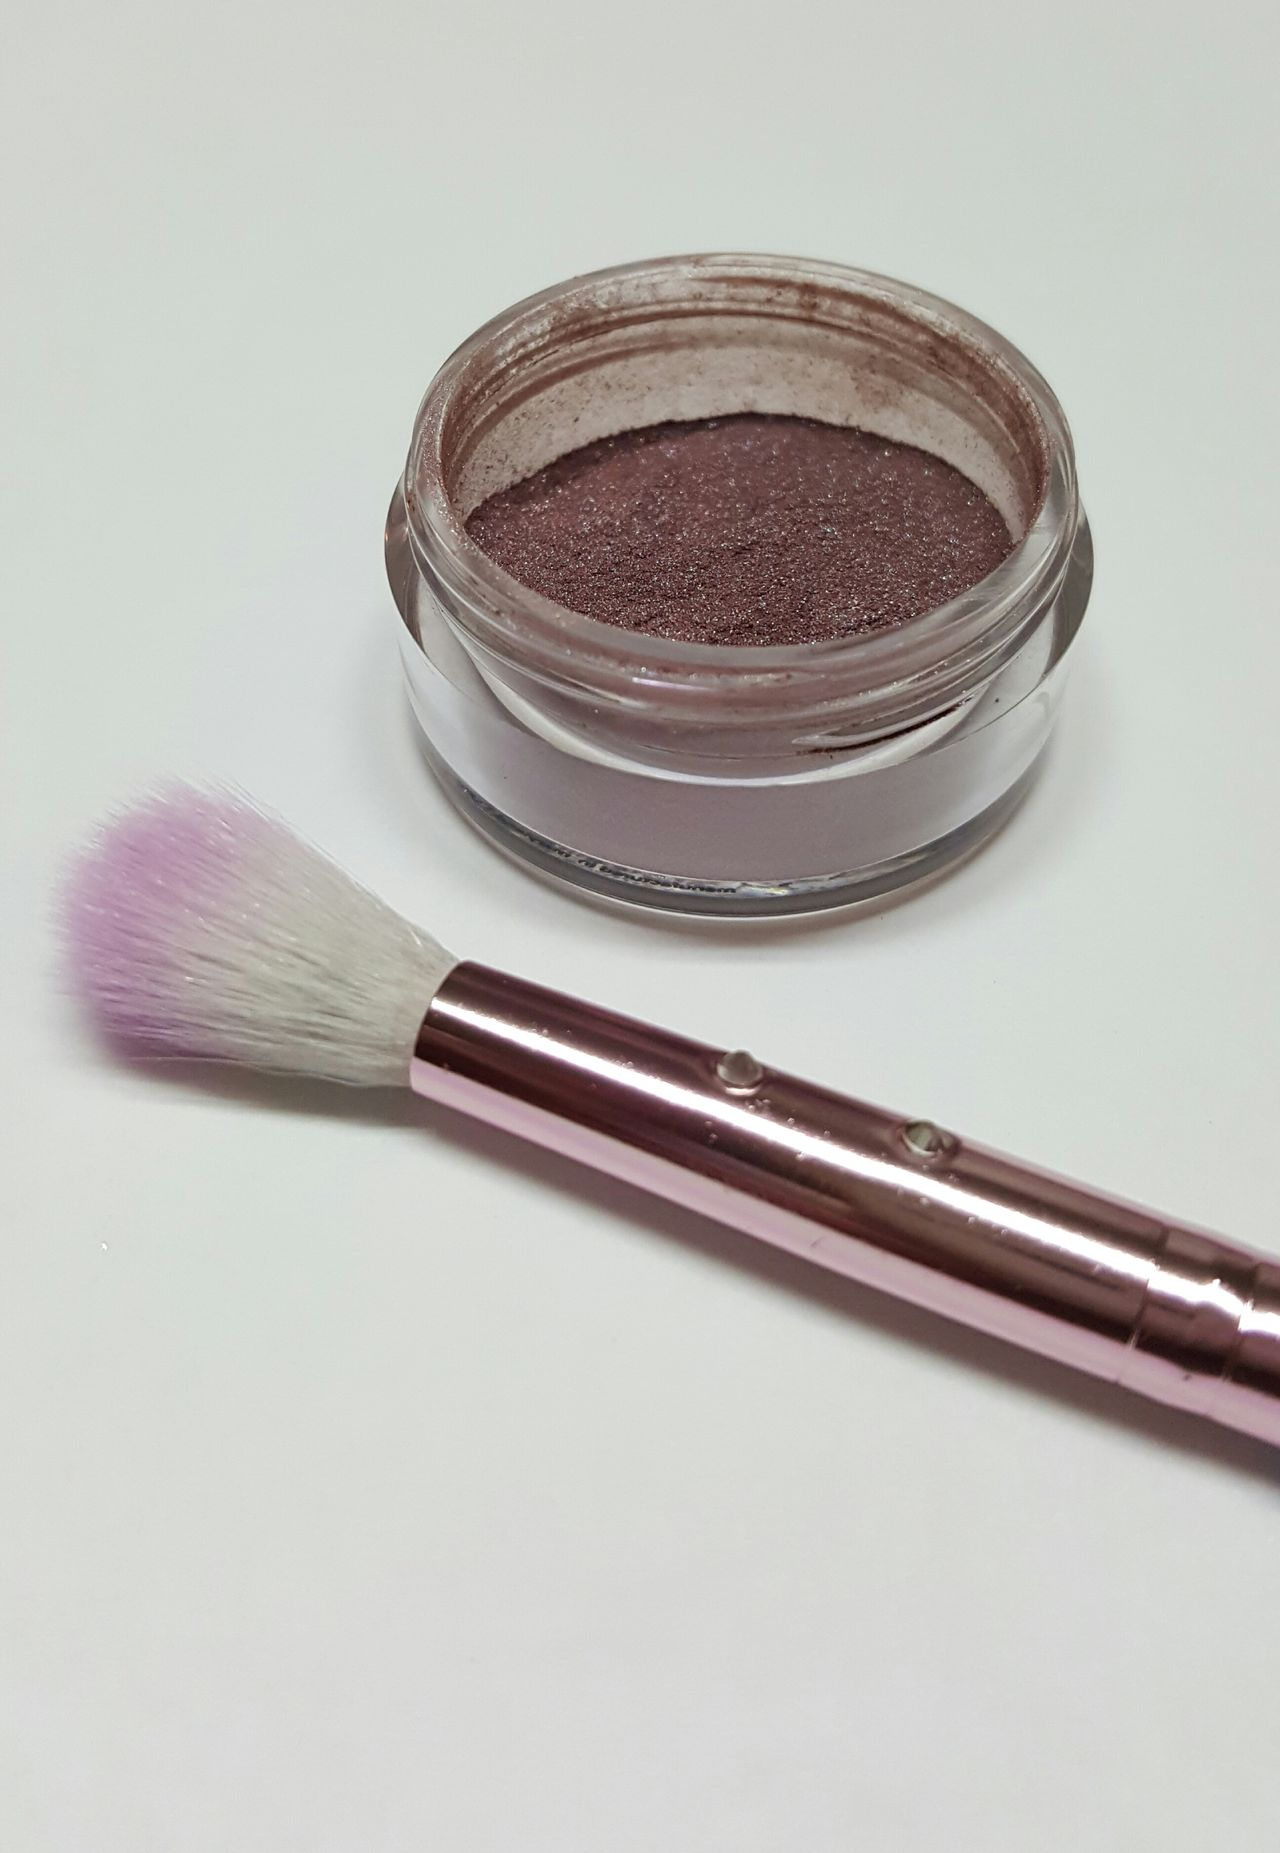 Blush - Make-up Indoors  No People Close-up Pink Color Still Life Textured  Brush Cosmetics Makeup Eyeshadow Beautiful Product Photography Detail